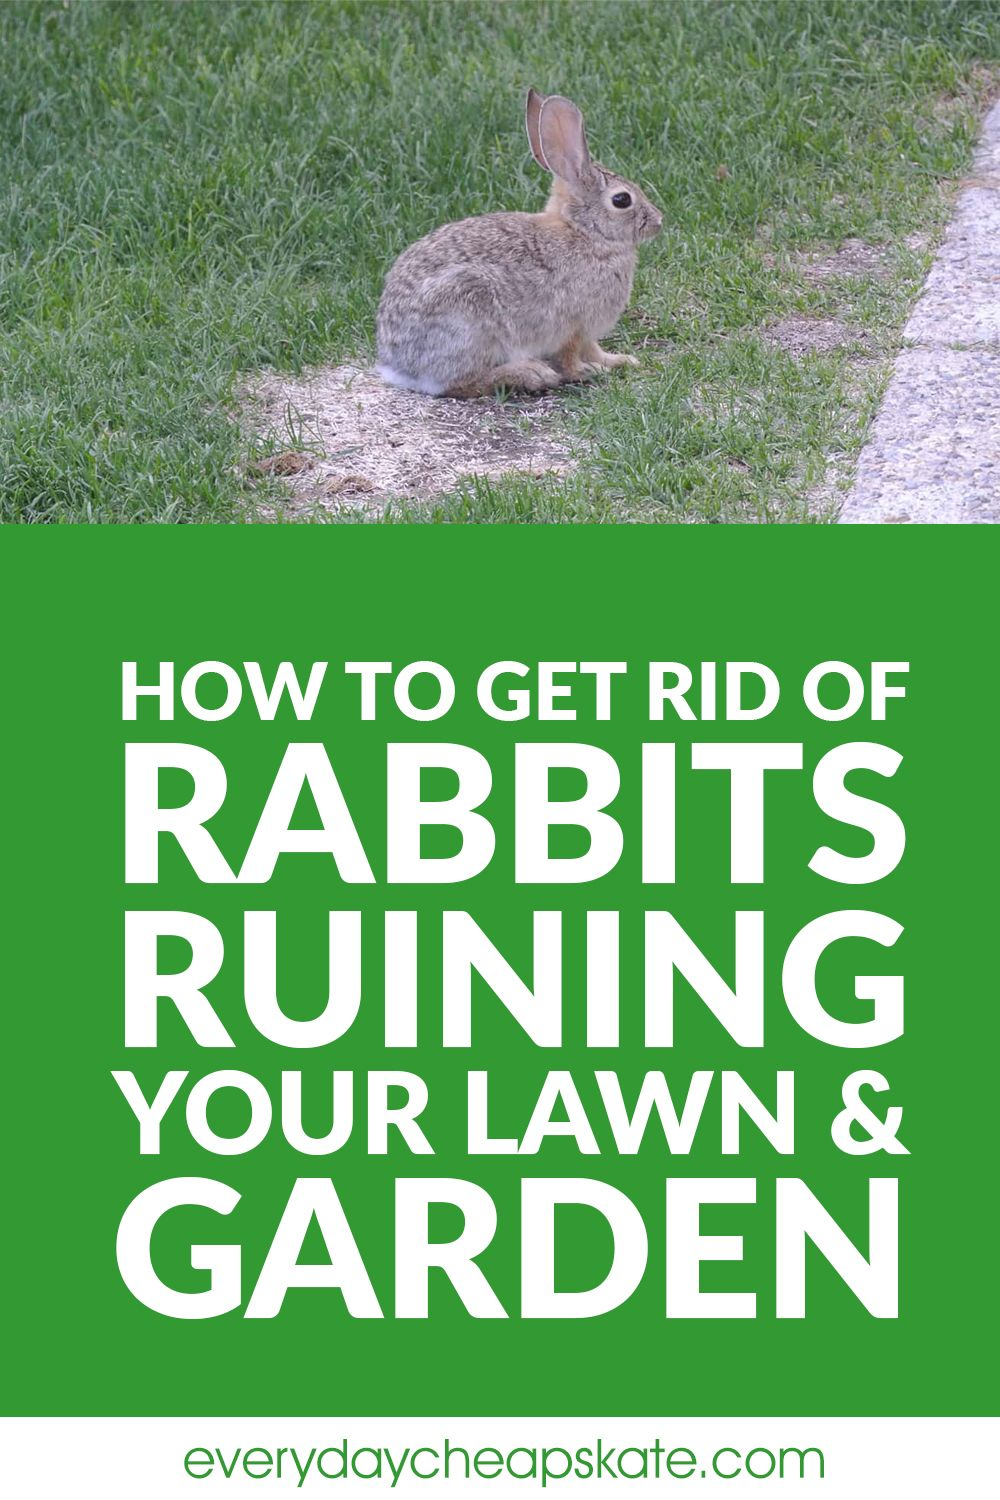 How To Get Rid Of Bunnies In My Yard